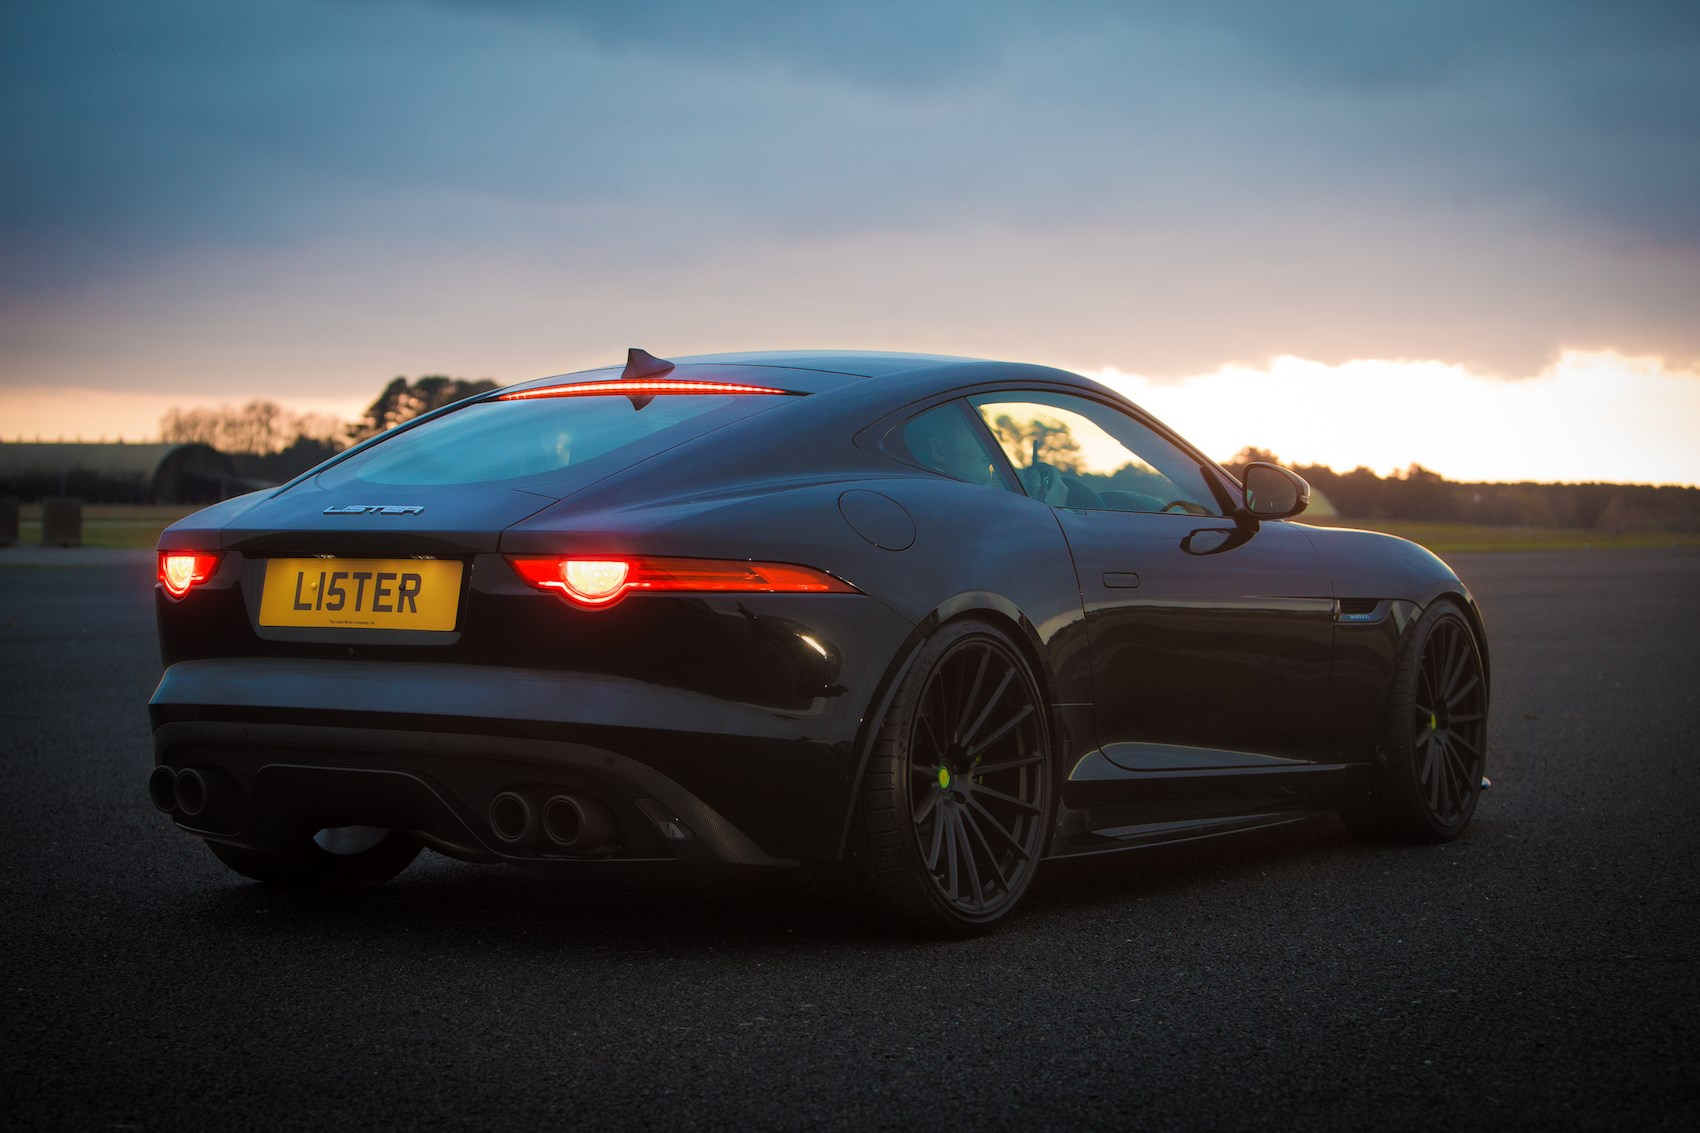 Lister Lft 666 Fire Breathing Modified F Type Has 666bhp